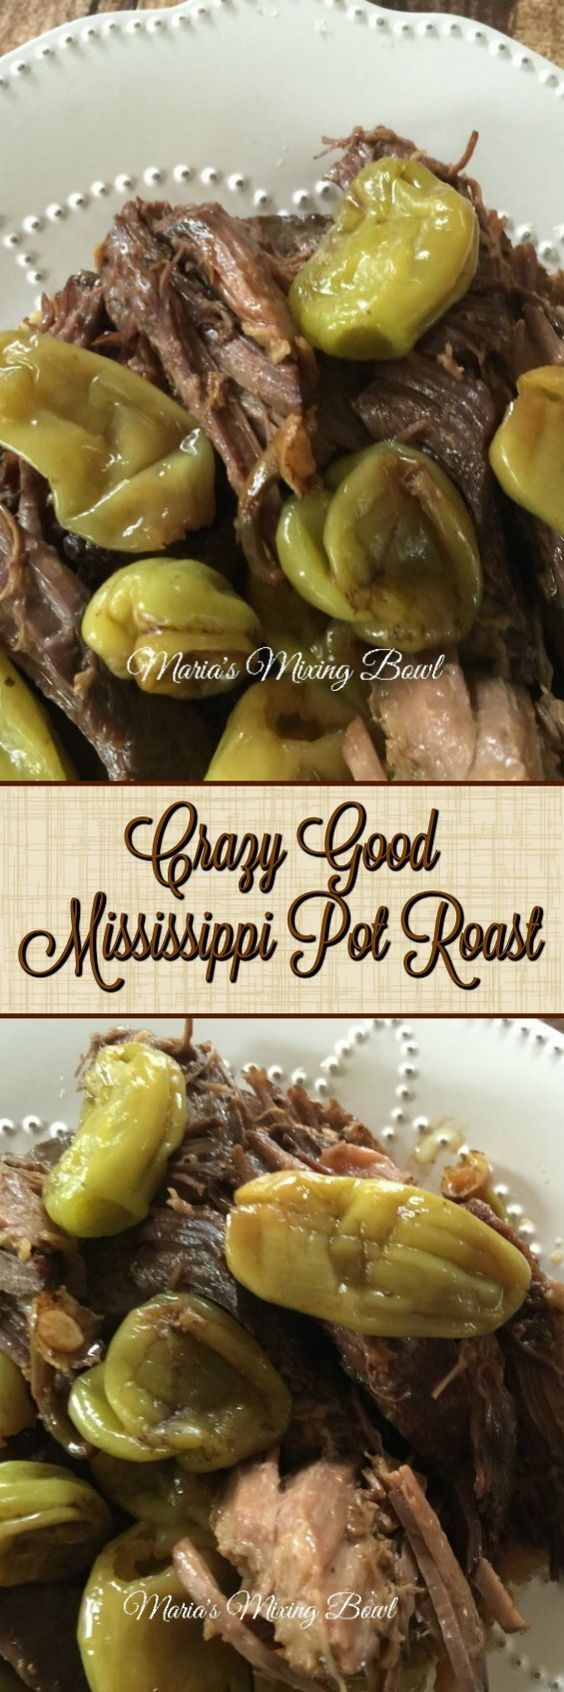 Crazy Good Mississippi Pot Roast - This is one of our go to slow cooker meals. We love it, it's easy, it only takes a few ingredients to make that I always have on hand and we LOVE it!!